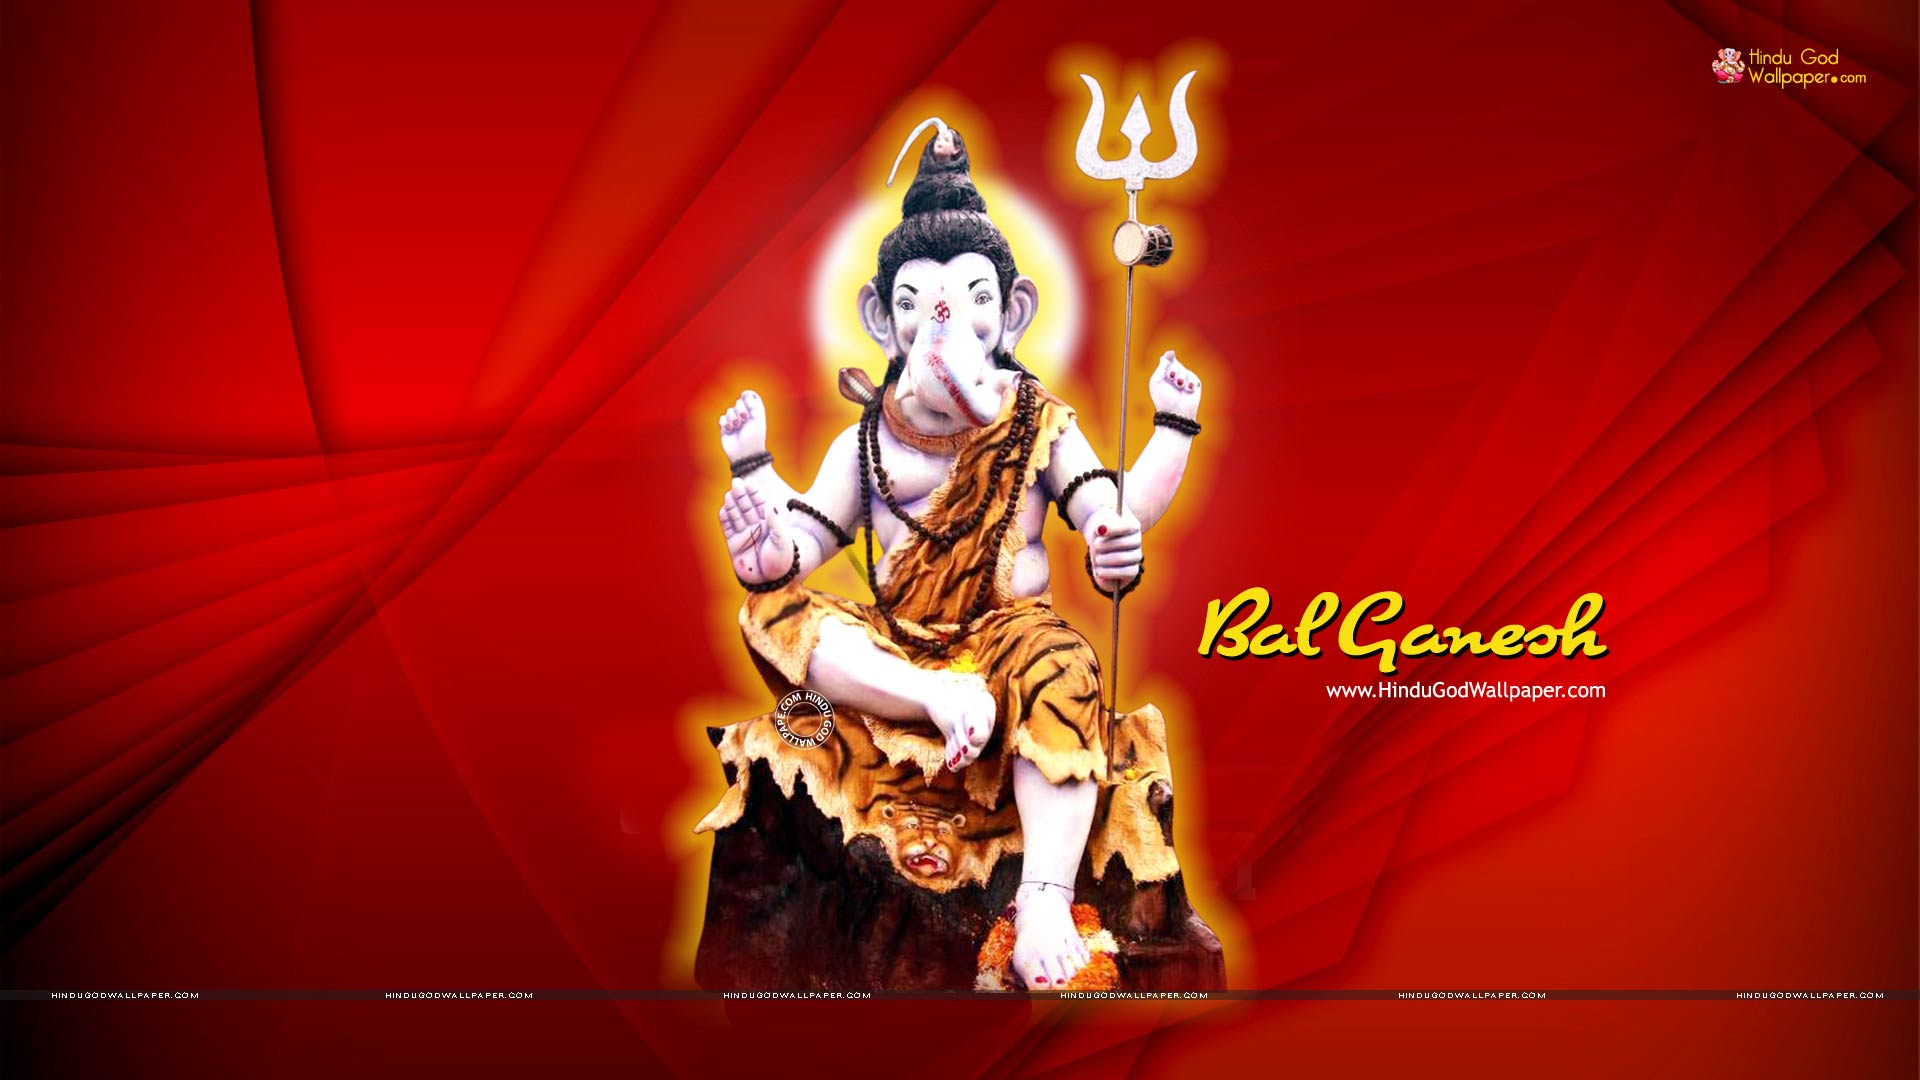 bal ganesh wallpaper hd